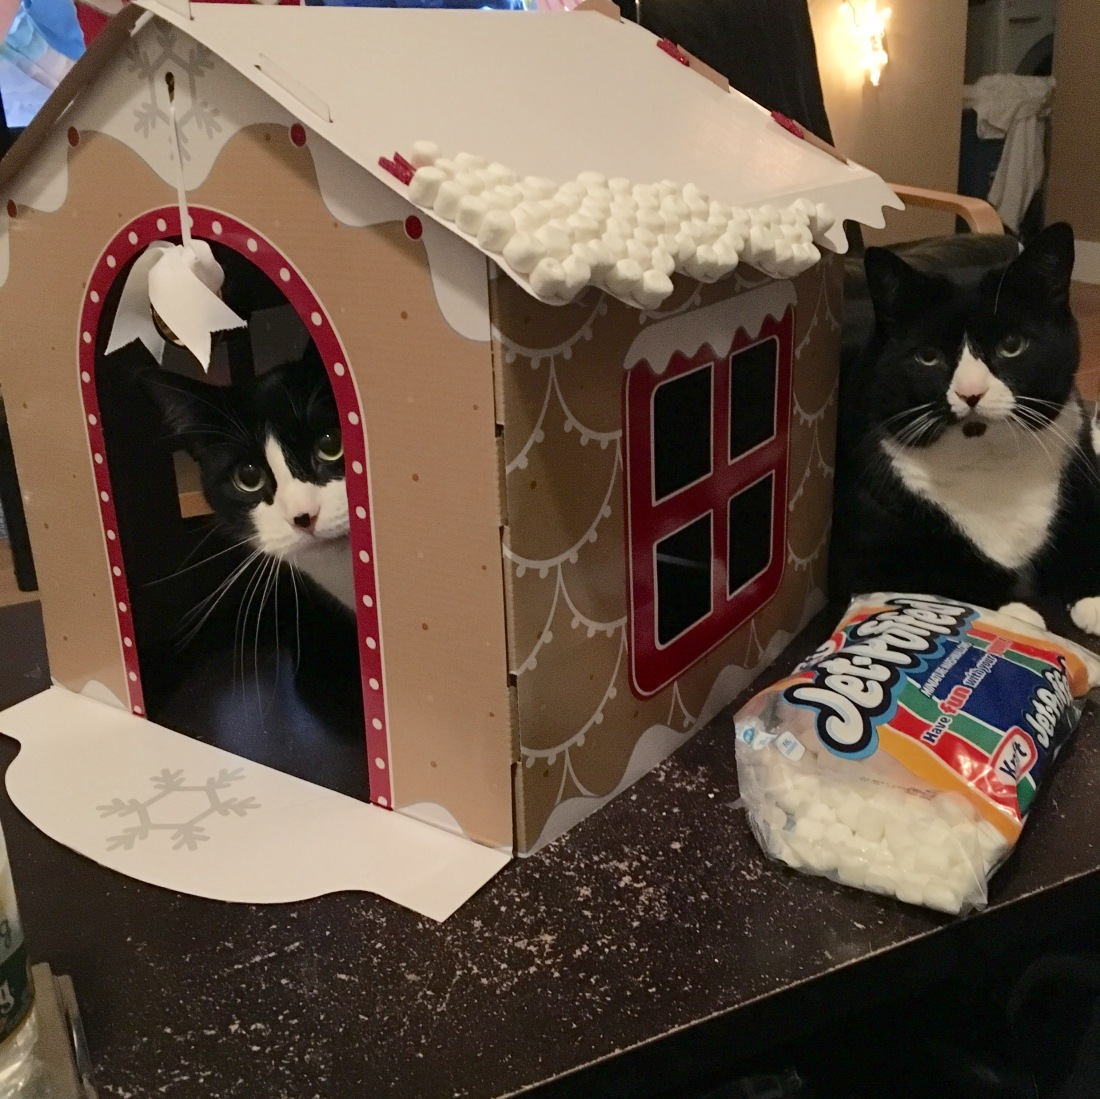 Tuxedo cats pose with gingerbread house